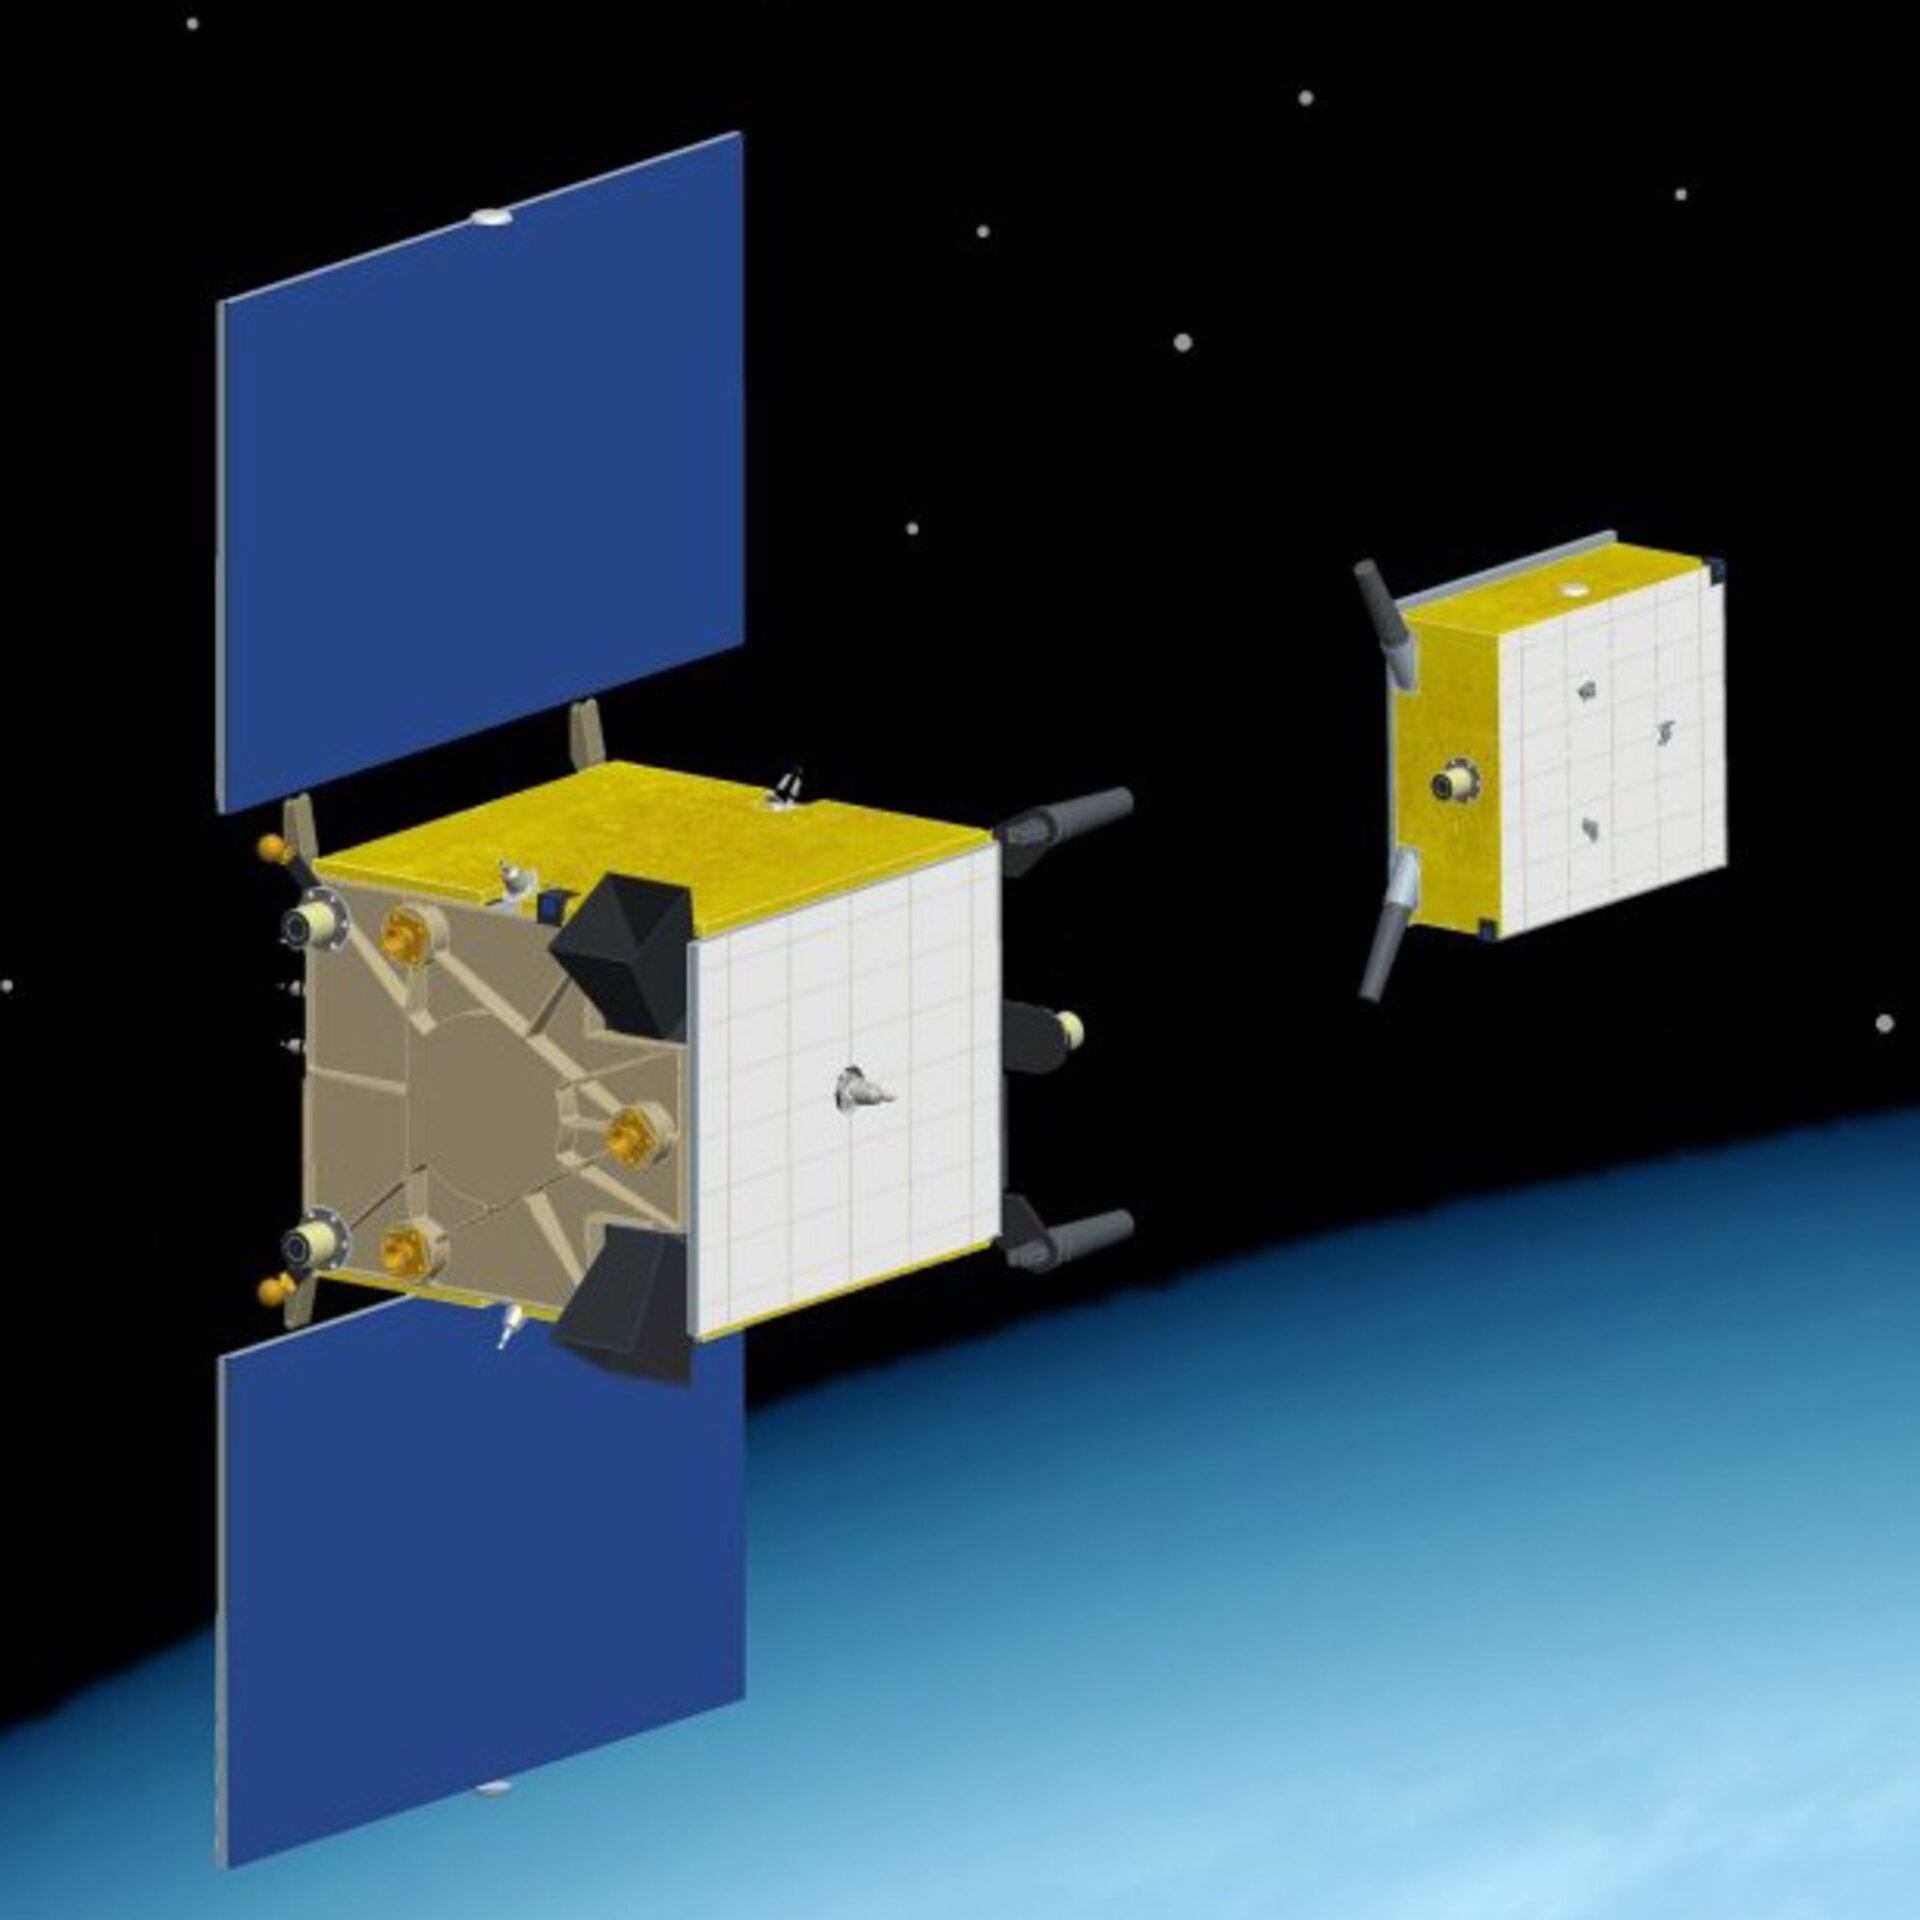 Prisma's Tango and Mango satellites